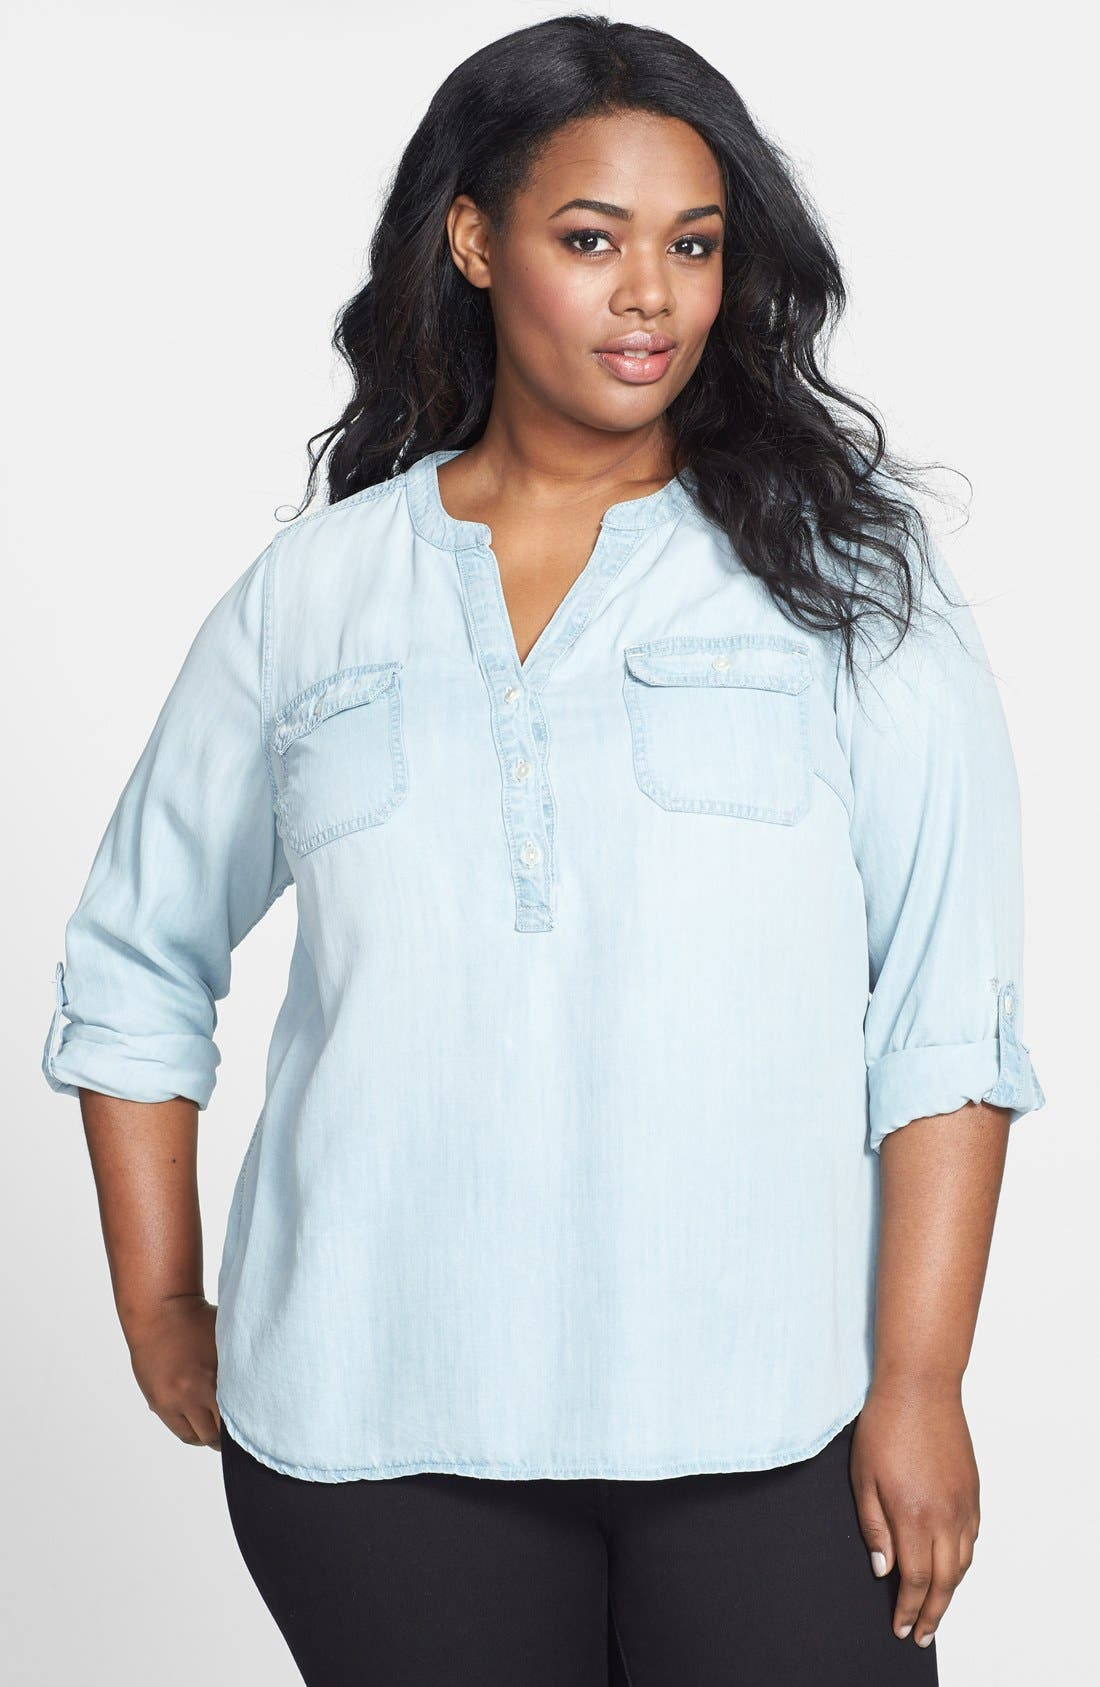 Alternate Image 1 Selected - Lucky Brand Chambray Top (Plus Size)